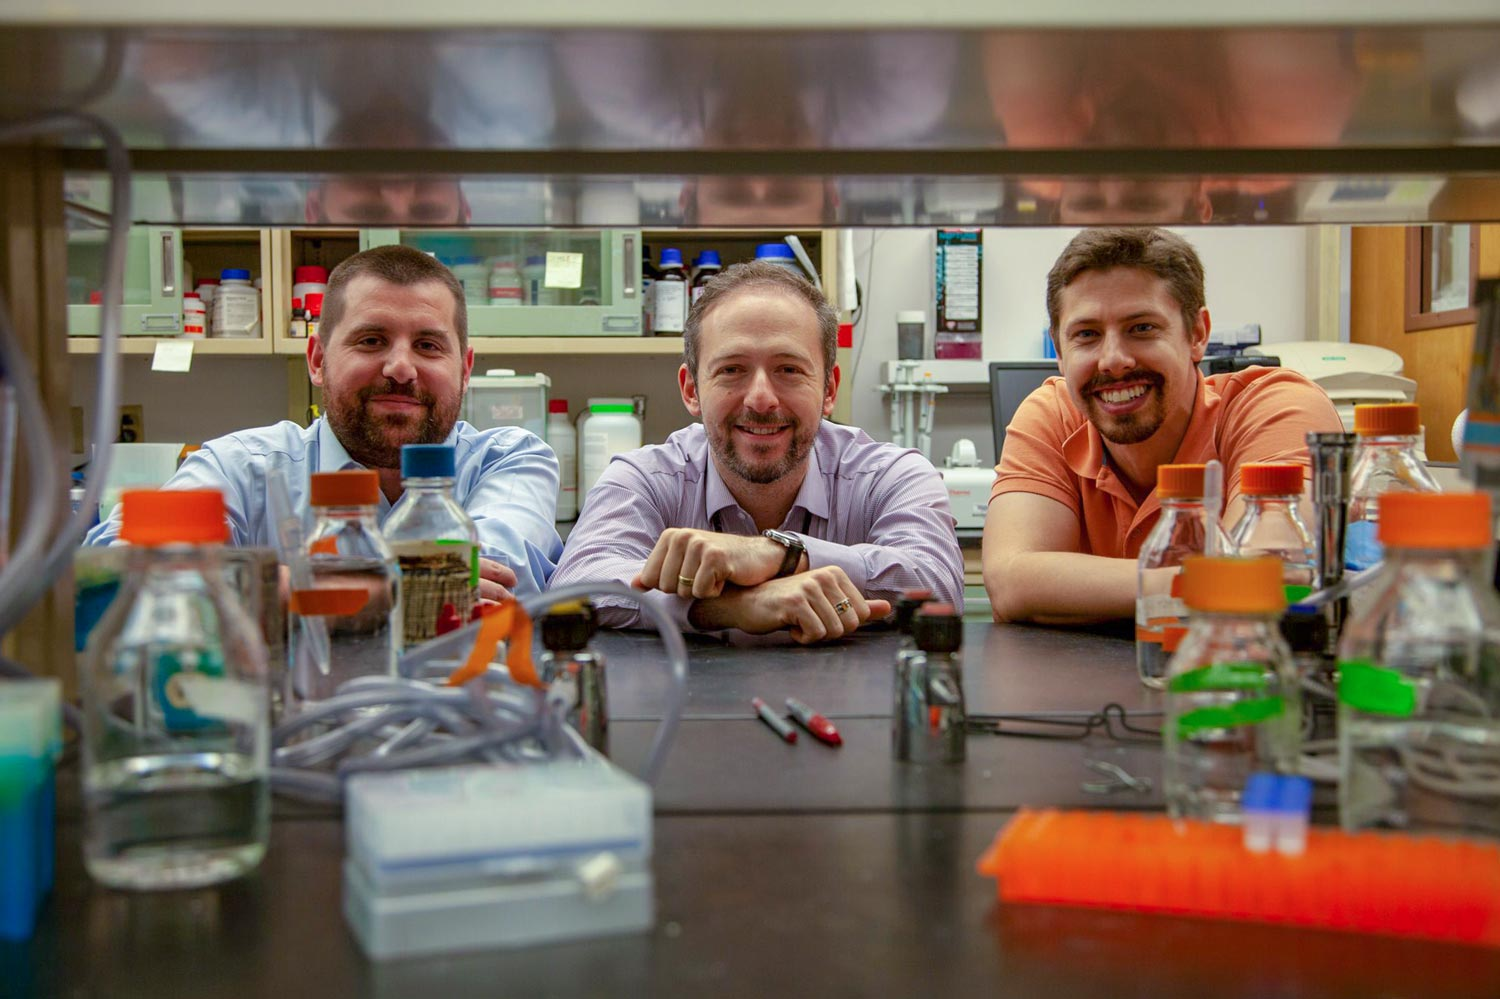 The research team behind the latest discovery includes, from left, Antoine Louveau, Jonathan Kipnis and Sandro Da Mesquita.